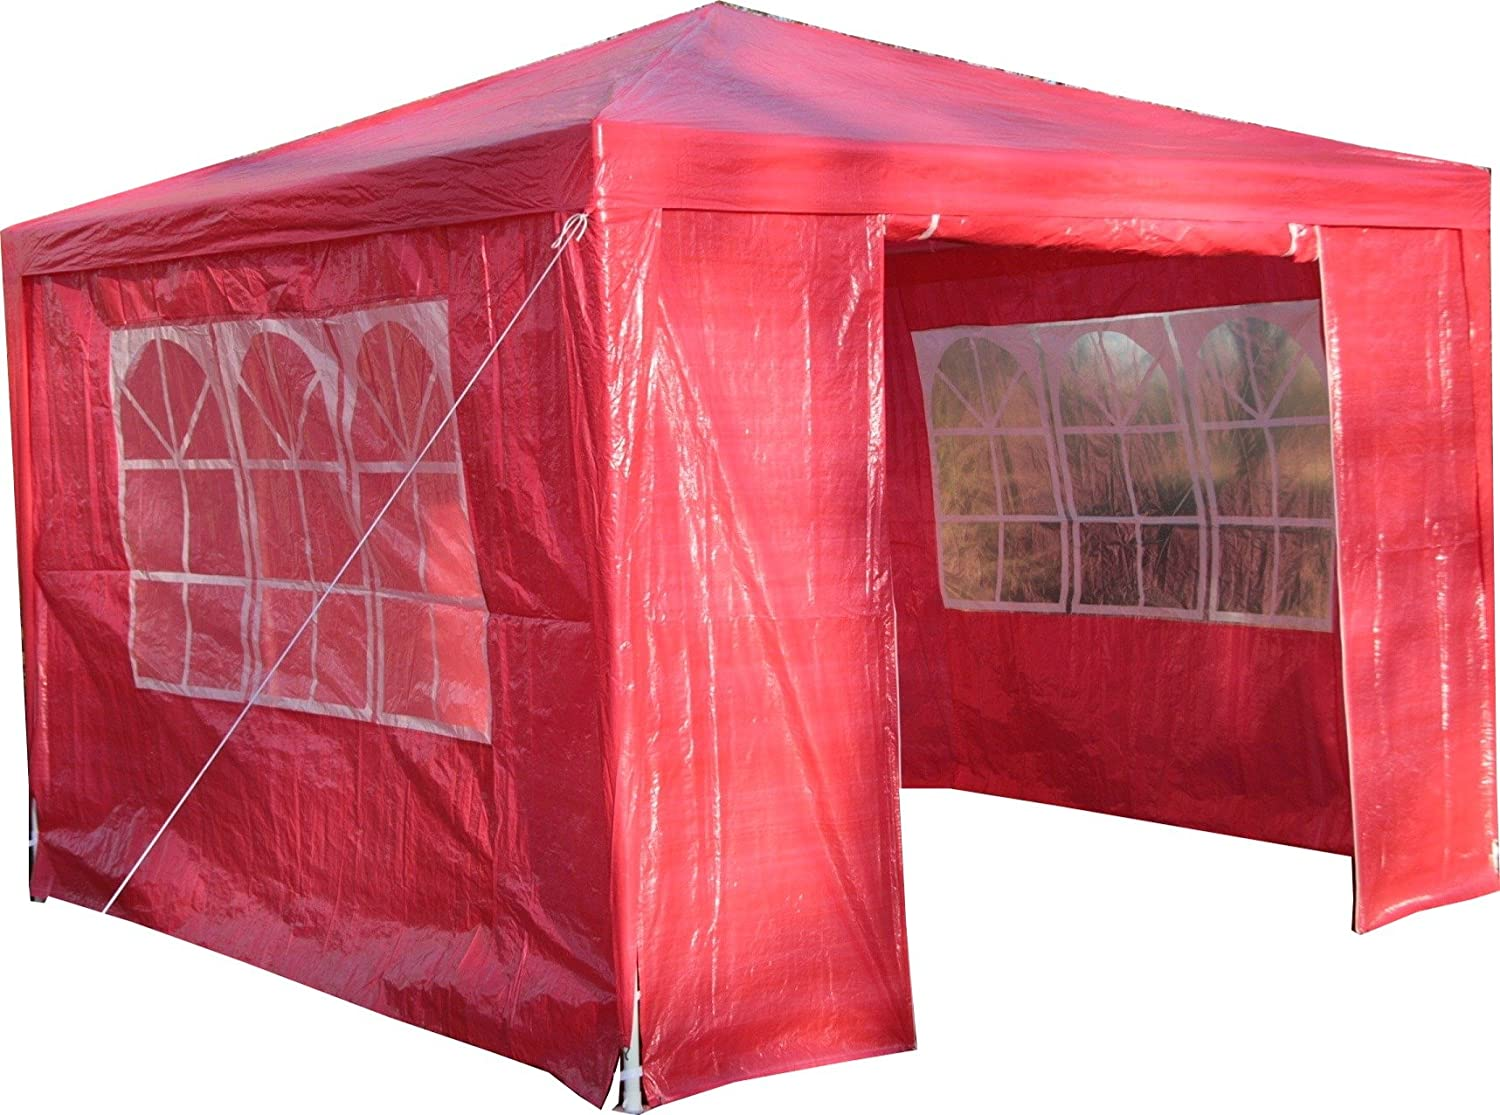 Airwave 3 x 3 m Party Tent Gazebo Marquee with Unique WindBar and Side Panels 120g Waterproof Canopy, Beige, 120g ESC Ltd 5060176862166